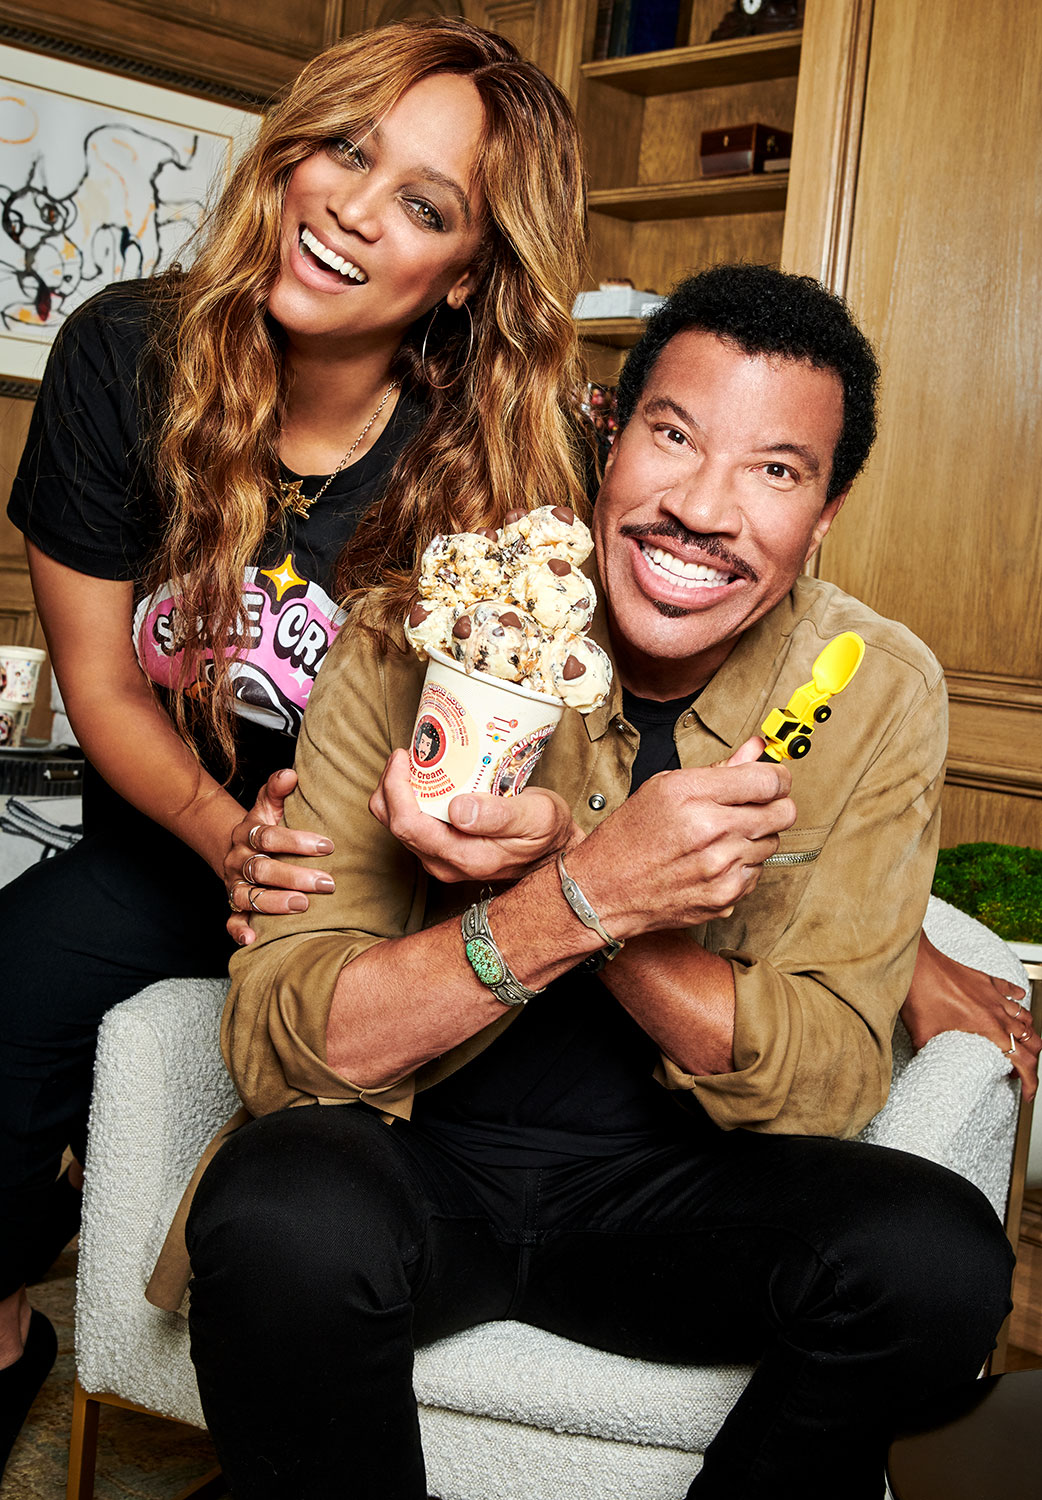 Tyra Banks and Lionel Richie Team Up to Release New All Night Love Smize Cream